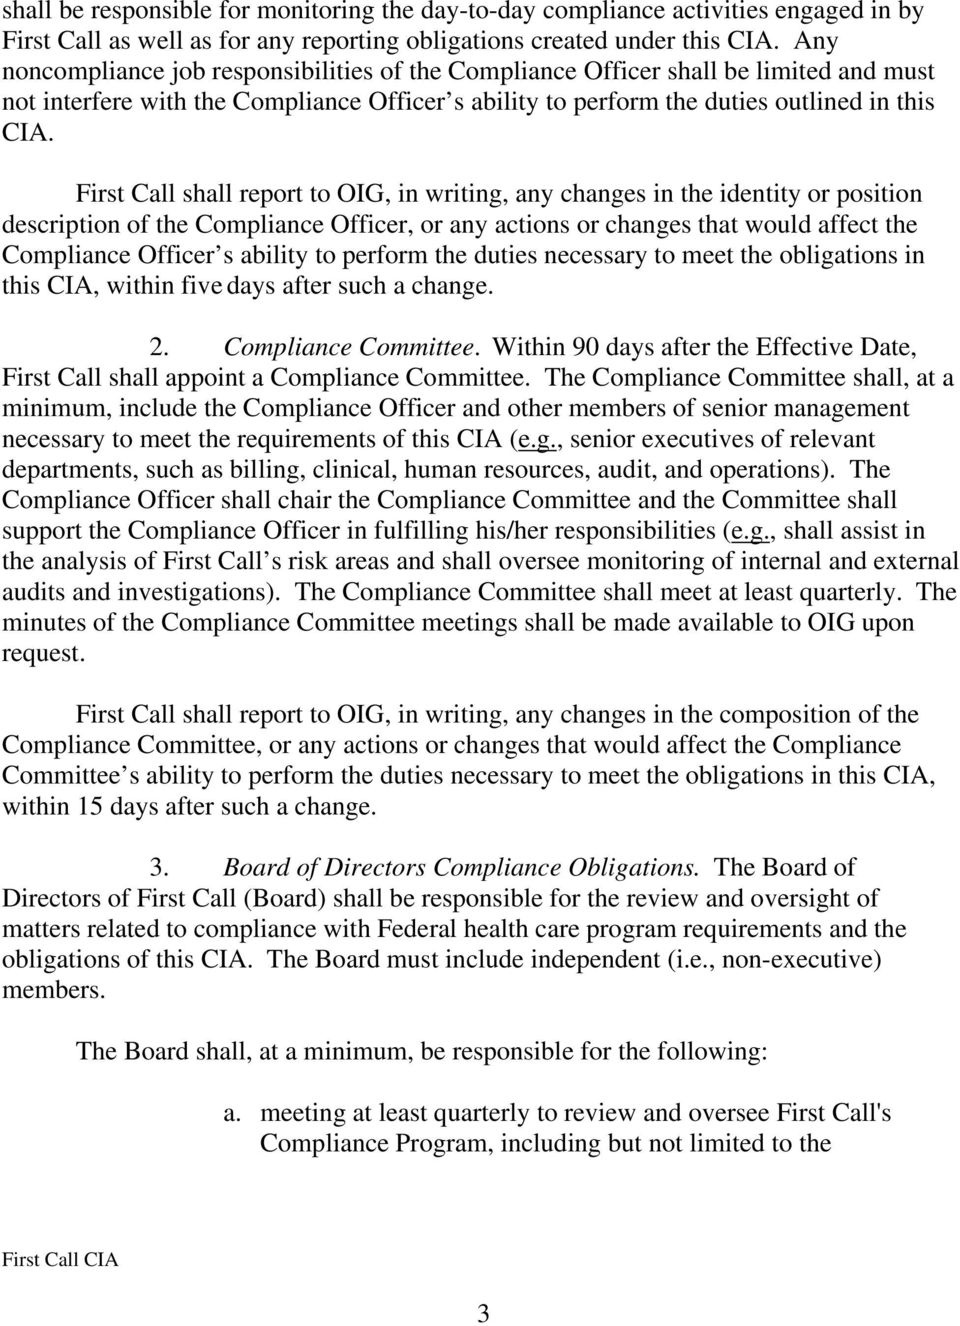 First Call shall report to OIG, in writing, any changes in the identity or position description of the Compliance Officer, or any actions or changes that would affect the Compliance Officer s ability